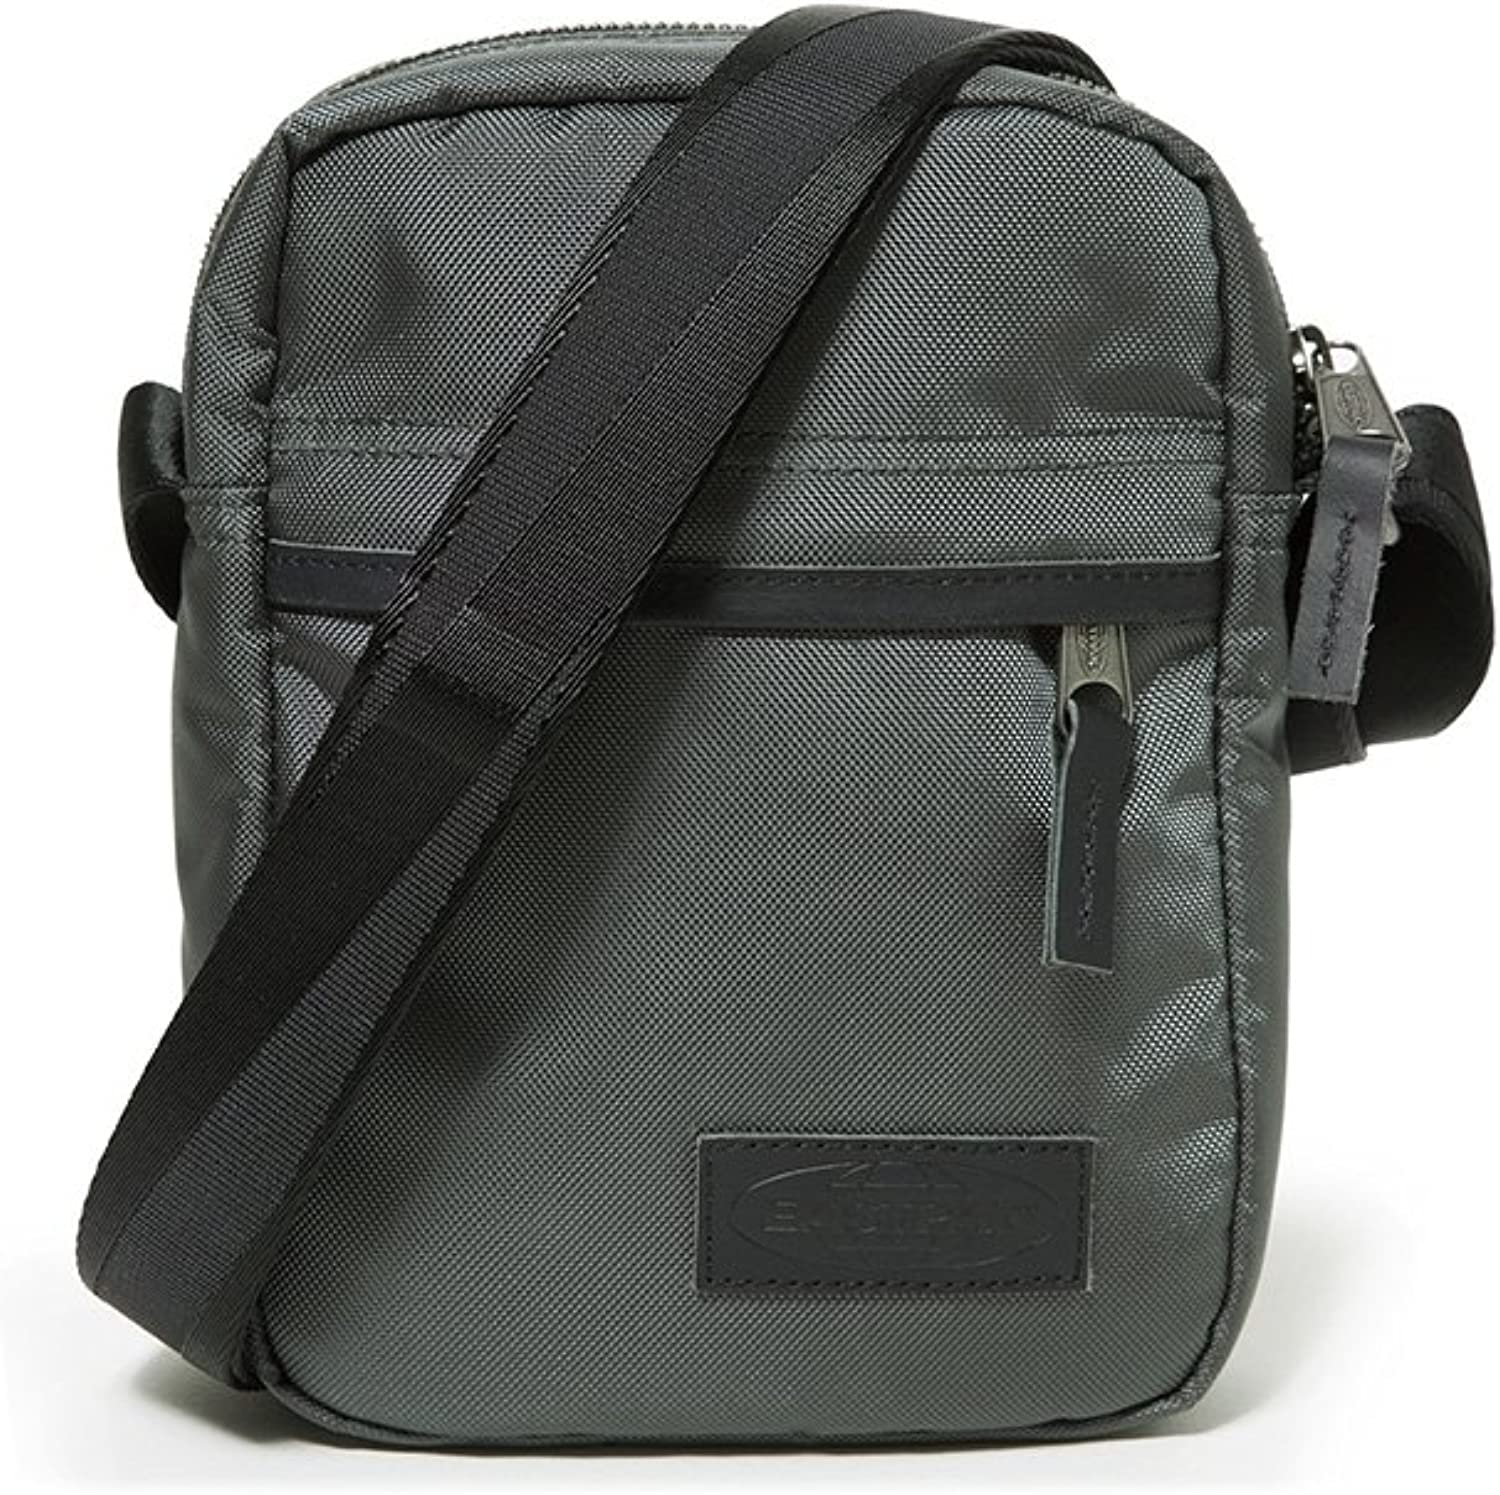 Eastpak The The The One Messenger Bag One Größe Constructed grau B072K687Y4 0e4598